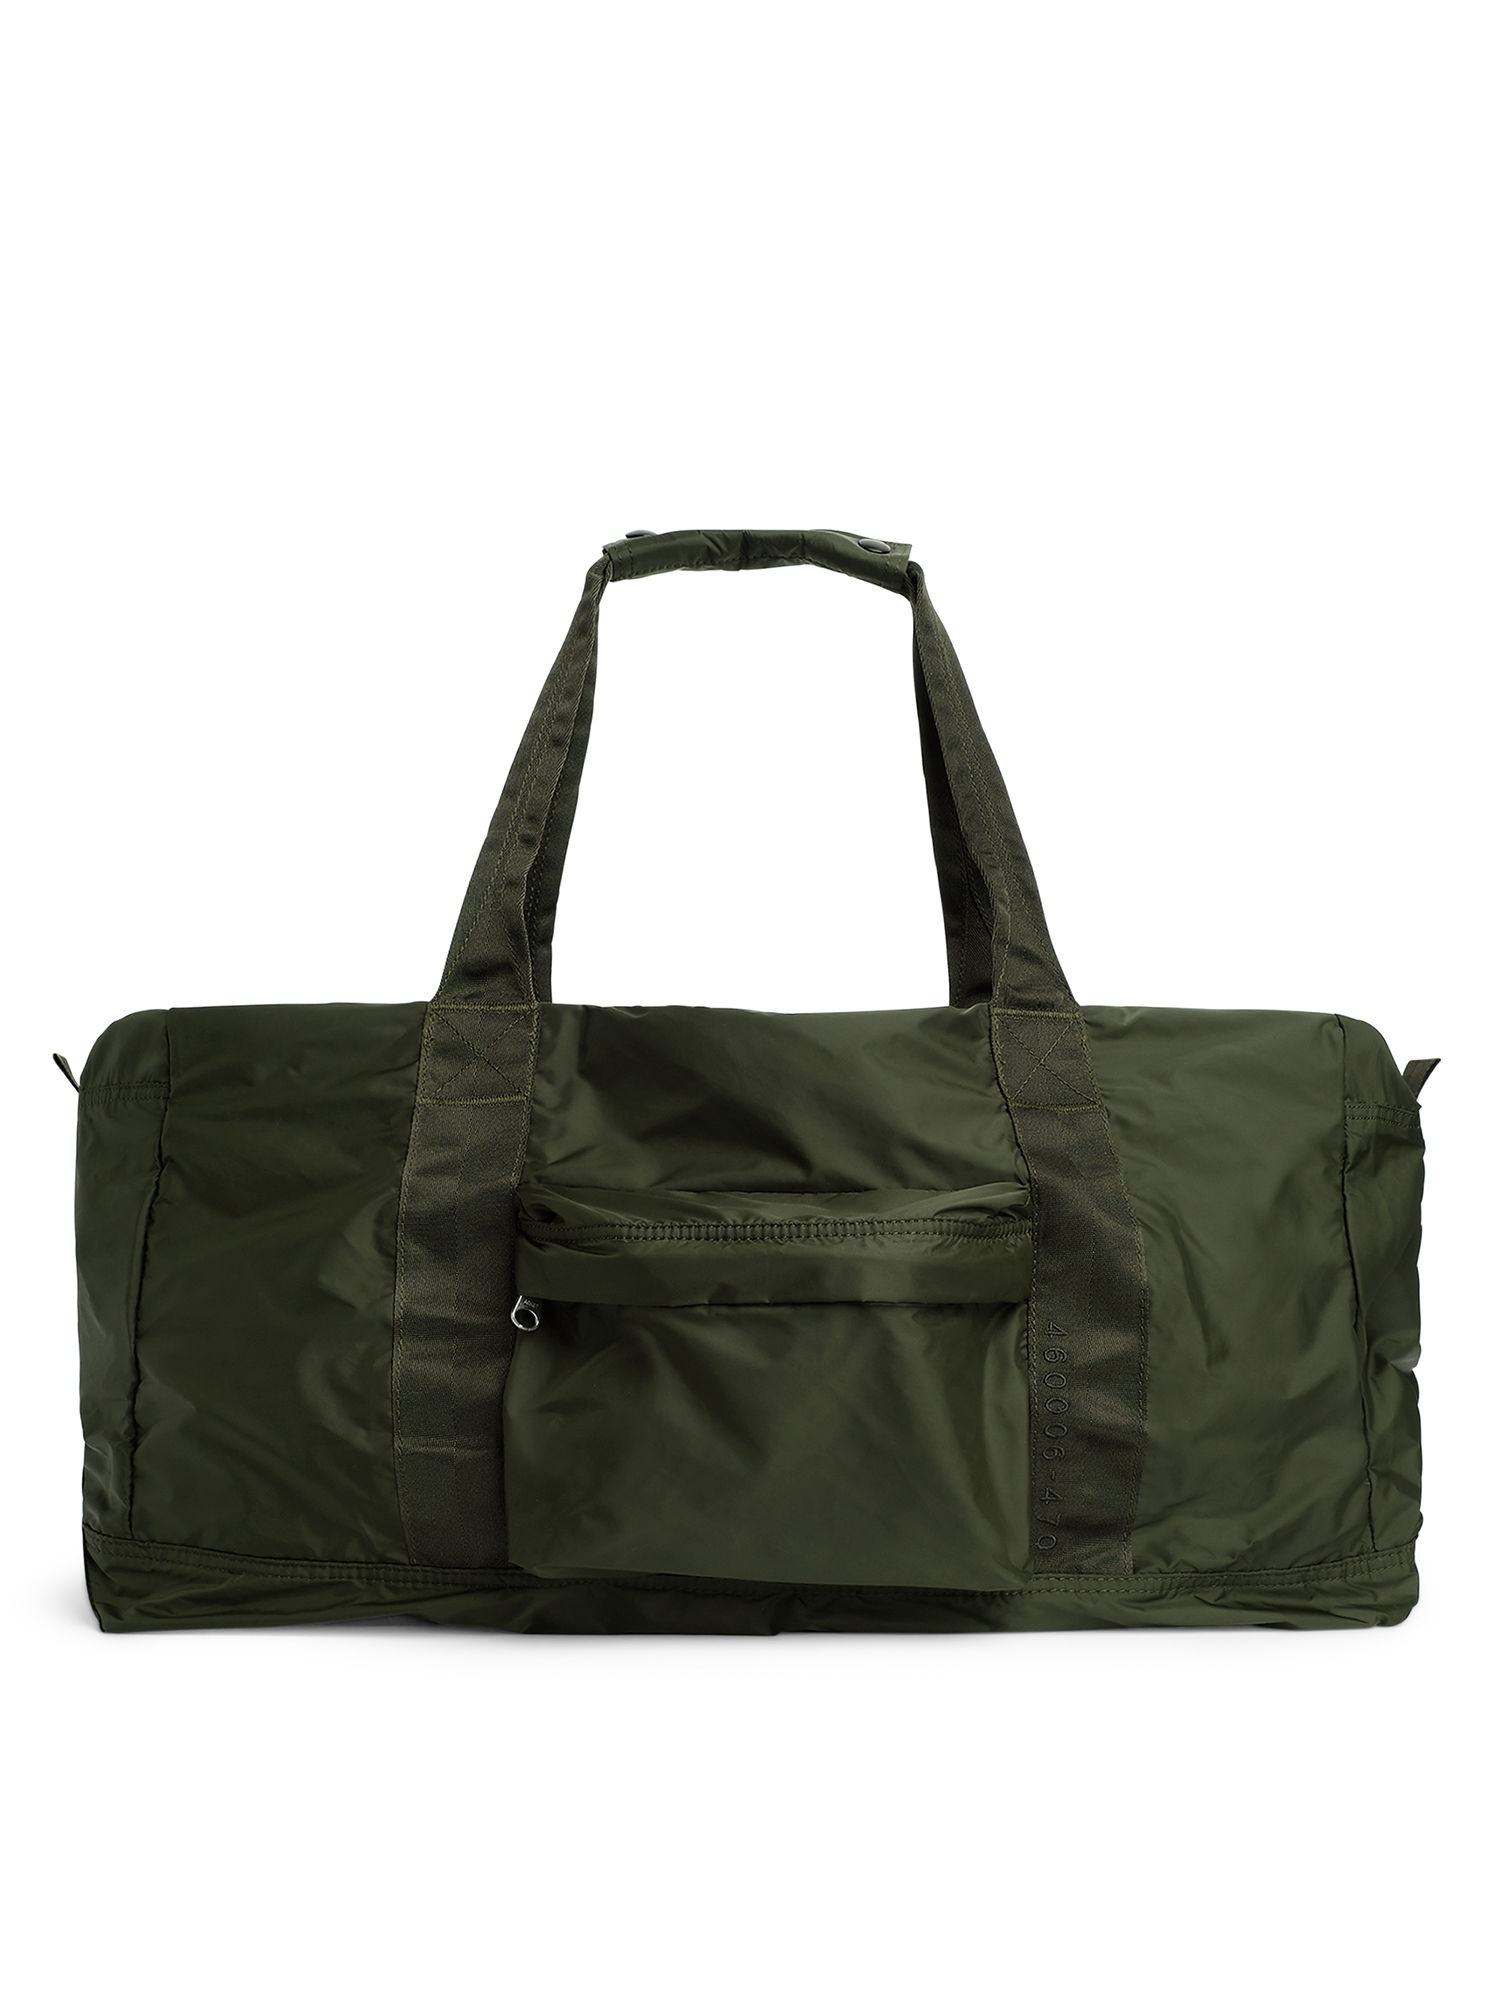 Fabric Swatch image of Arket packable duffle in green